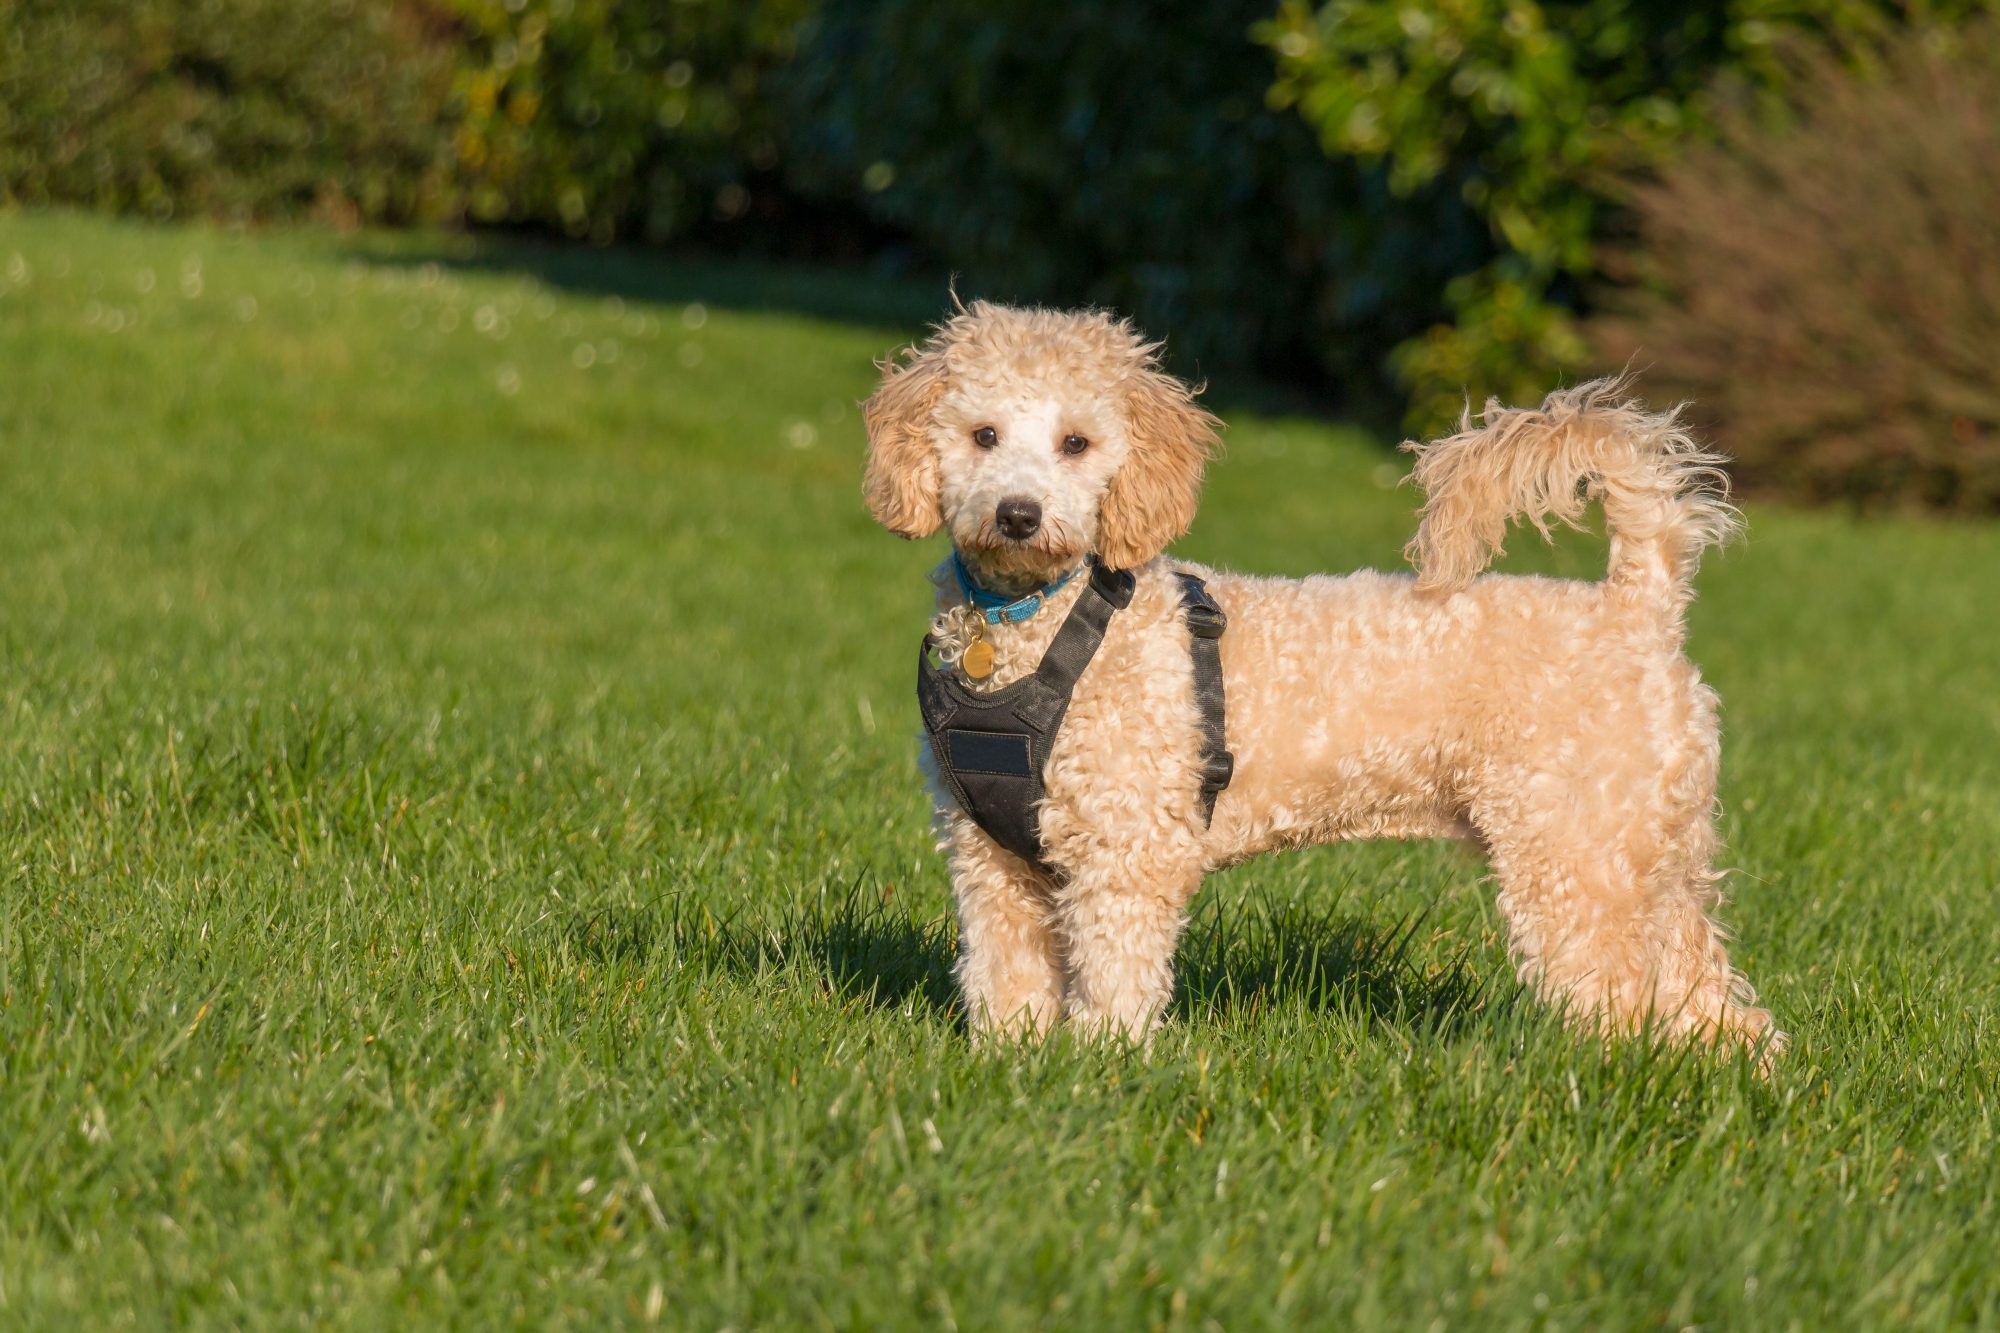 Poochon Dog Standing in Grass